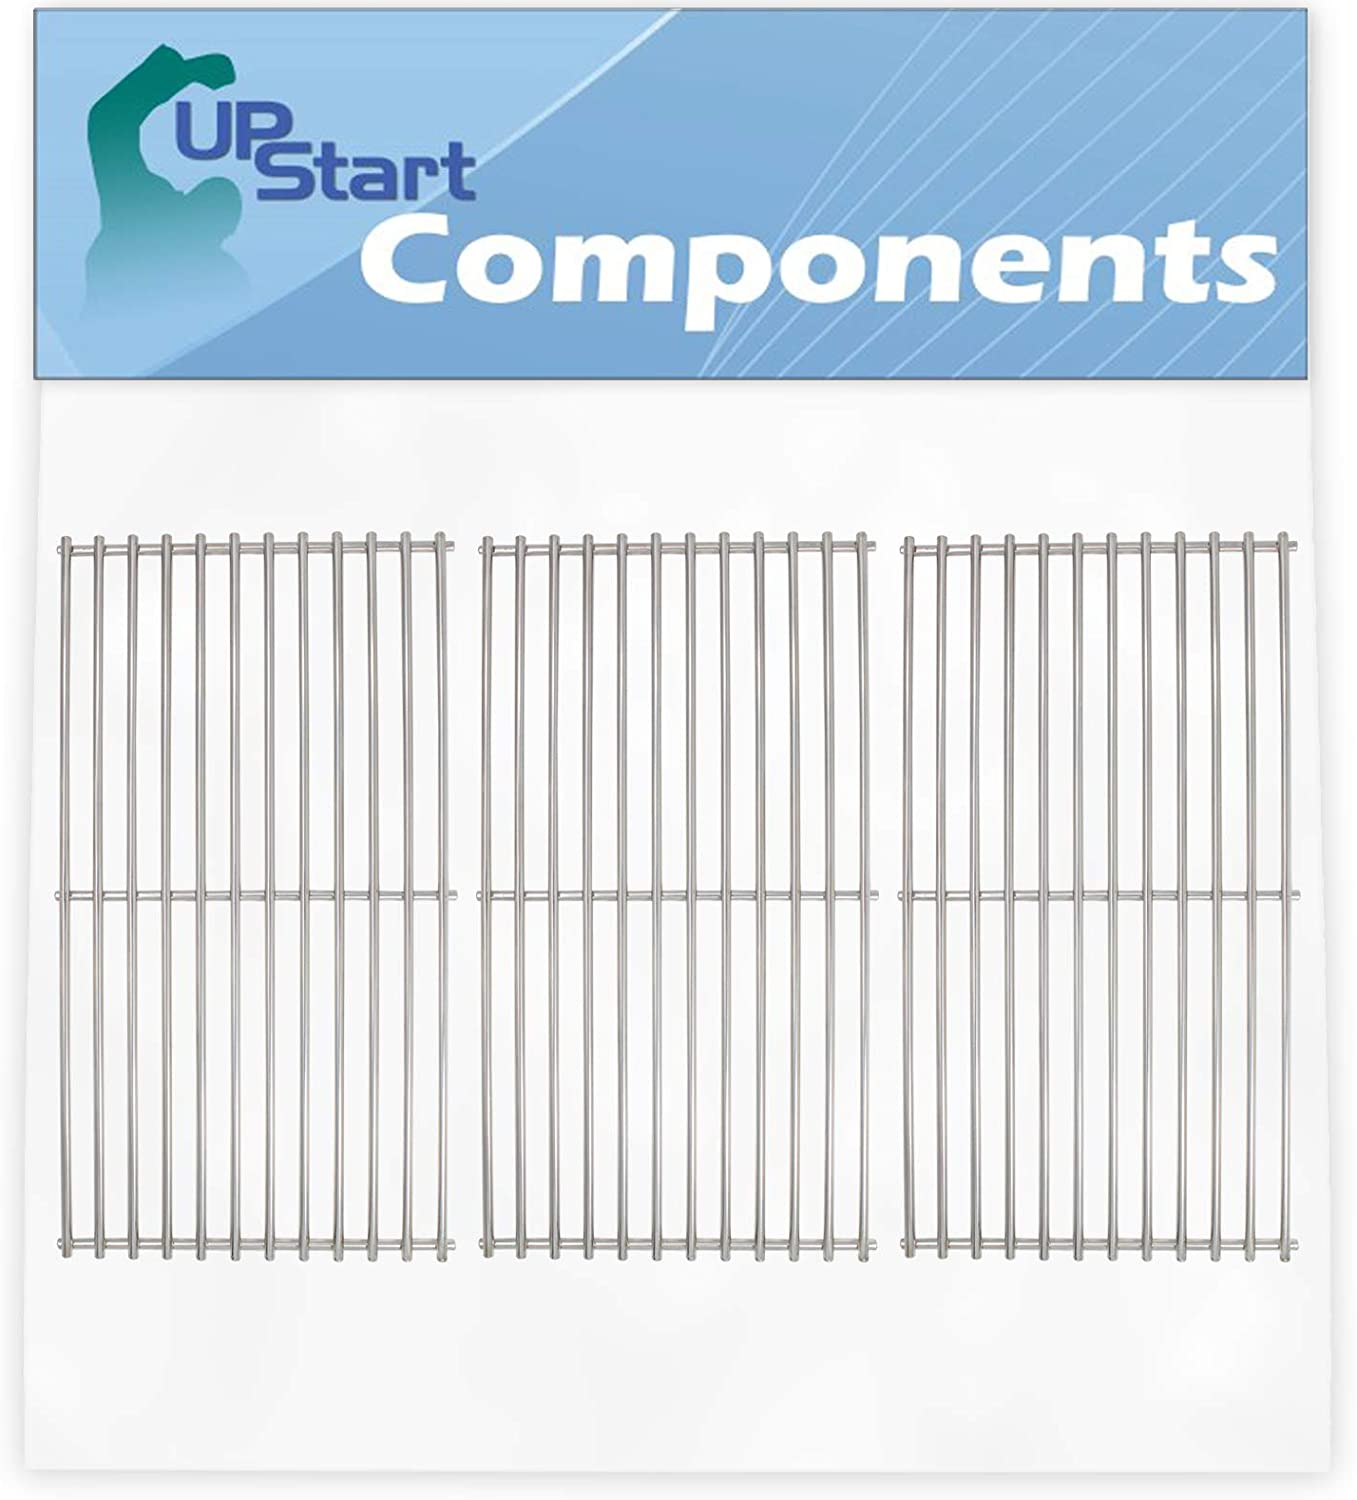 UpStart Components 3-Pack BBQ Grill Cheap Max 72% OFF mail order shopping P Grates Replacement Cooking